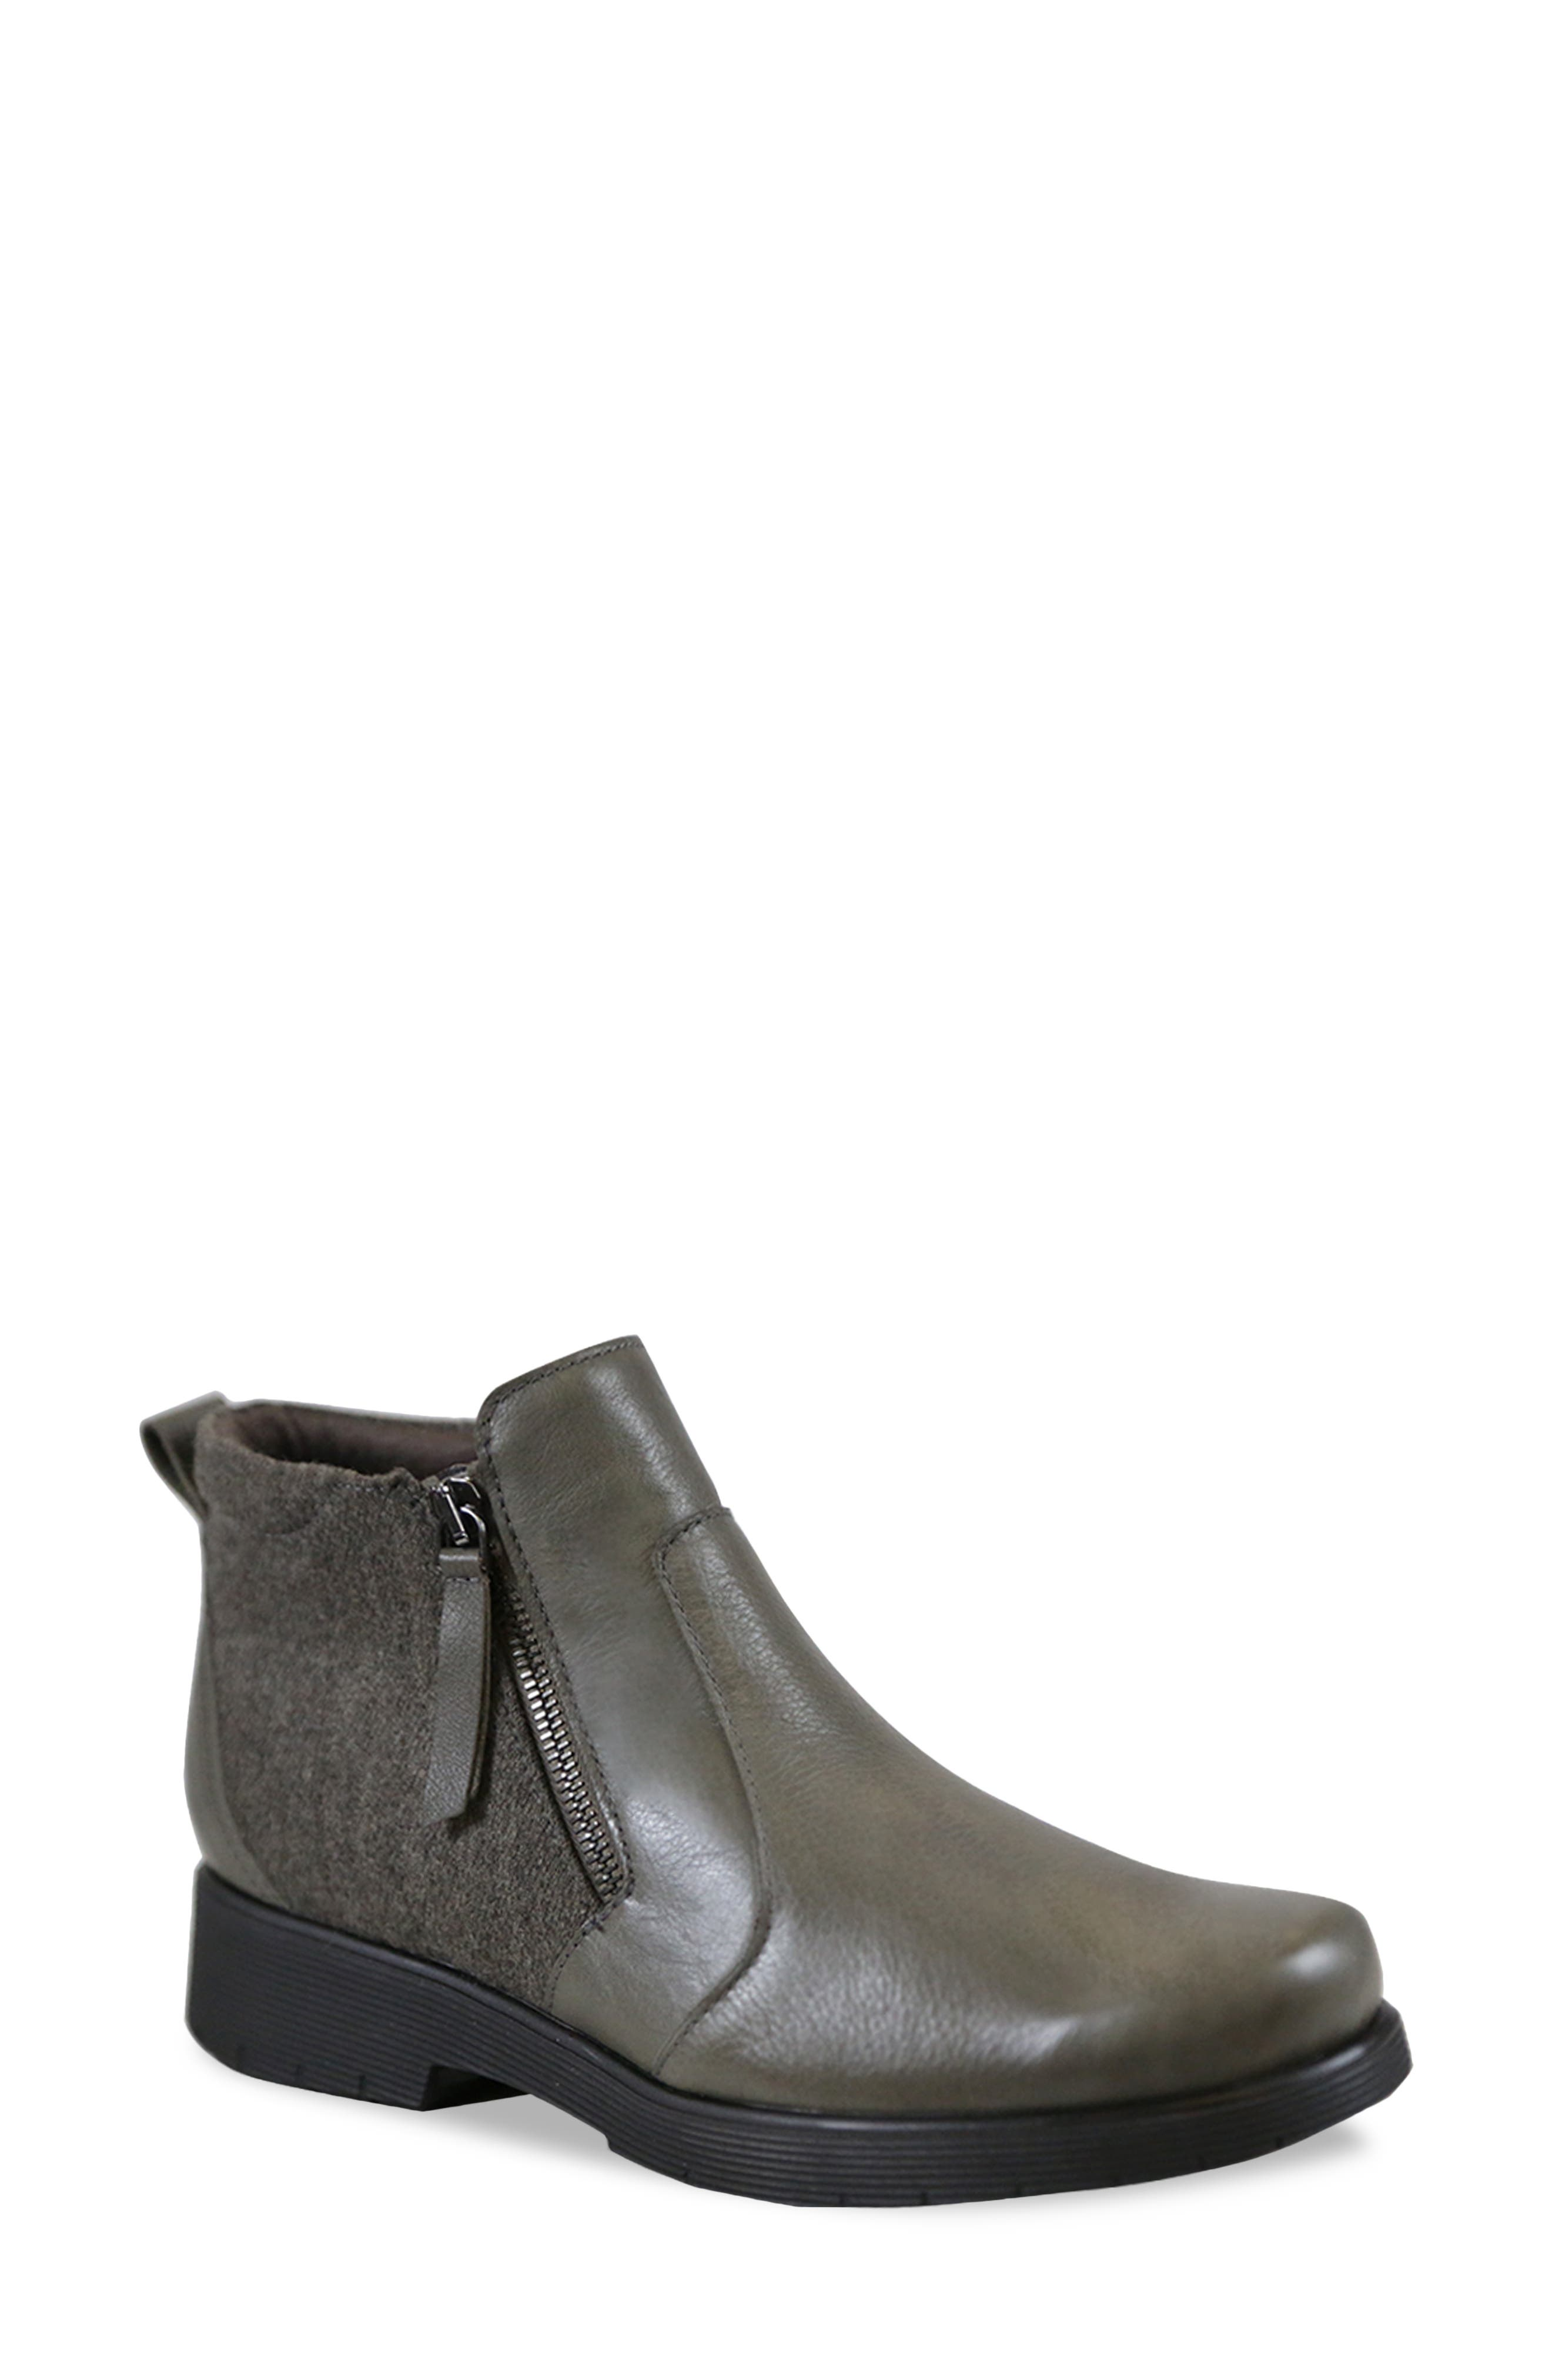 Keep feet cool, dry and comfortable in a versatile bootie lined with moisture-wicking technology and set on a durable, all-weather sole. Style Name: Munro Bonnie Bootie (Women). Style Number: 6093590. Available in stores.